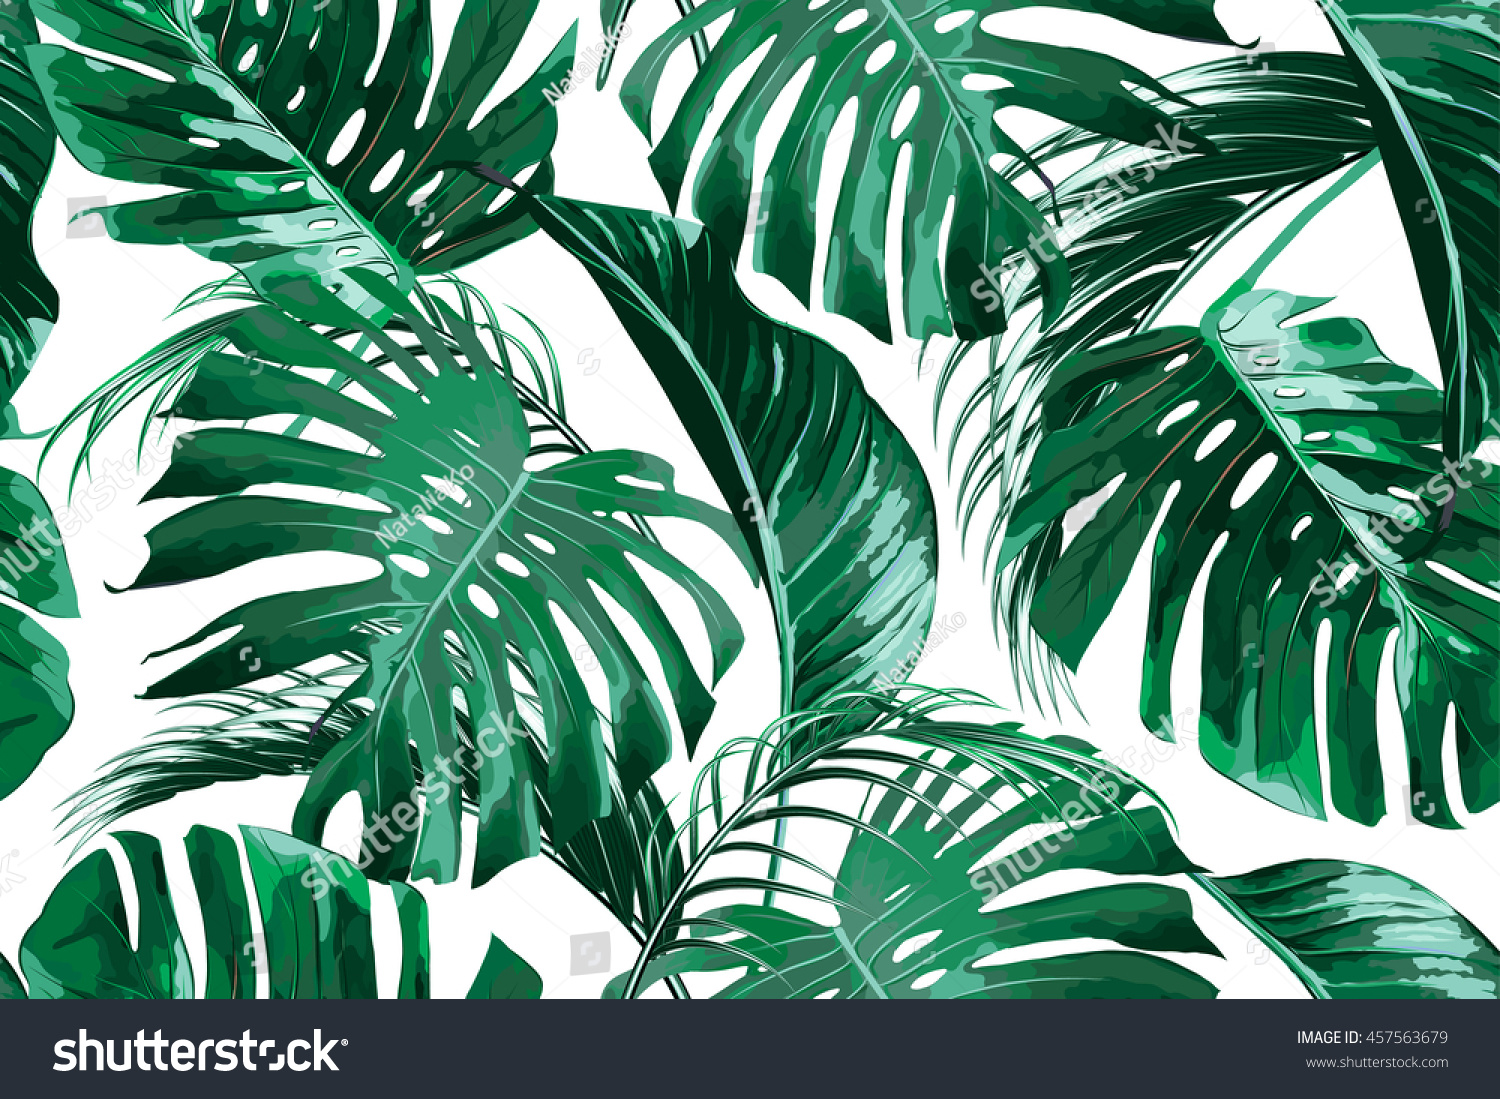 Tropical palm leaves, jungle leaf seamless vector floral pattern background - Dschungel Hintergrund PNG